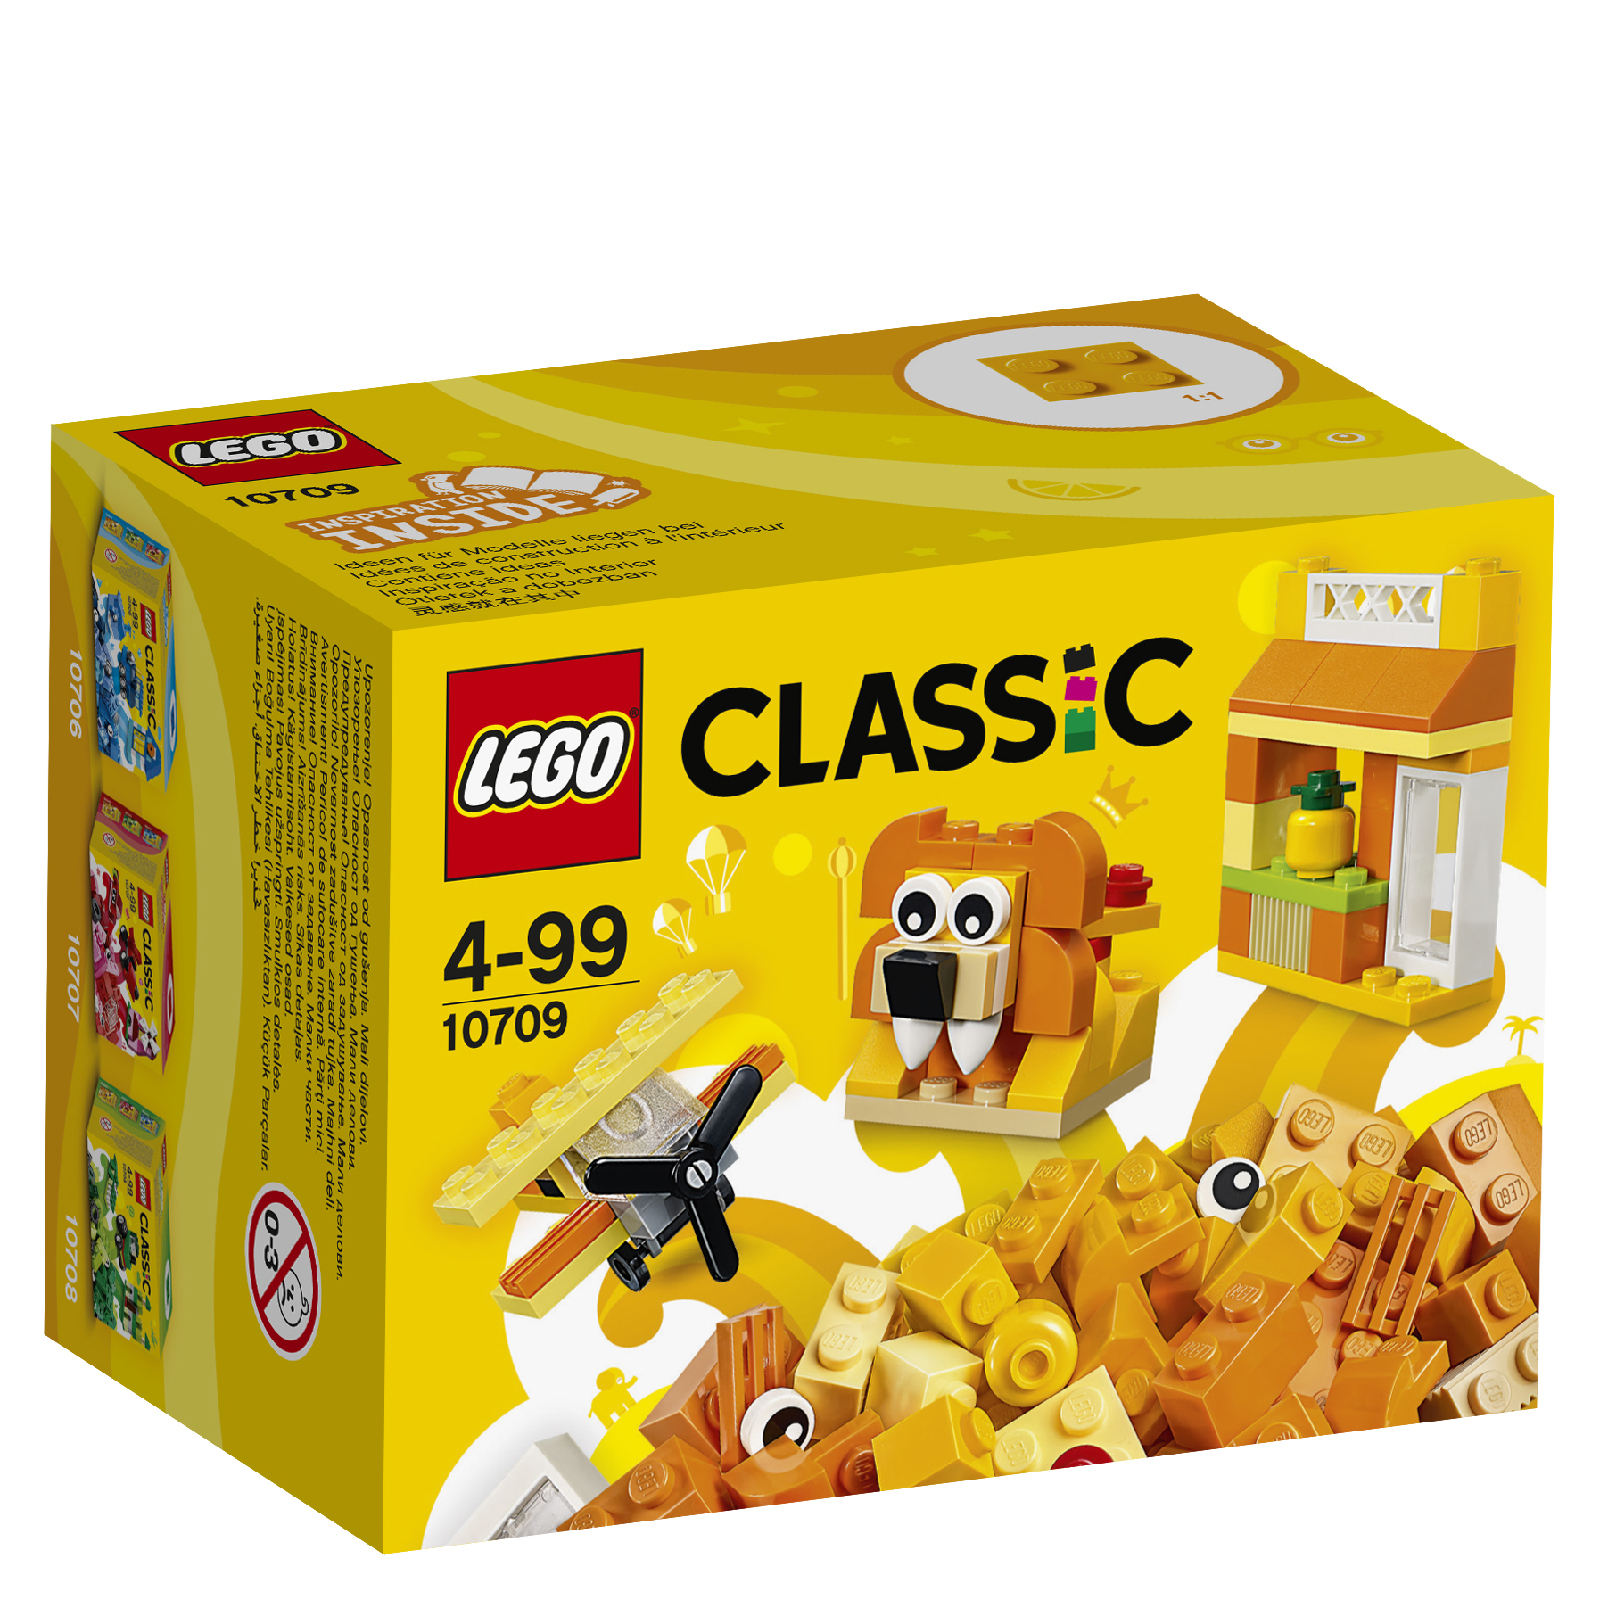 LEGO Classic: Boîte de construction orange (10709)